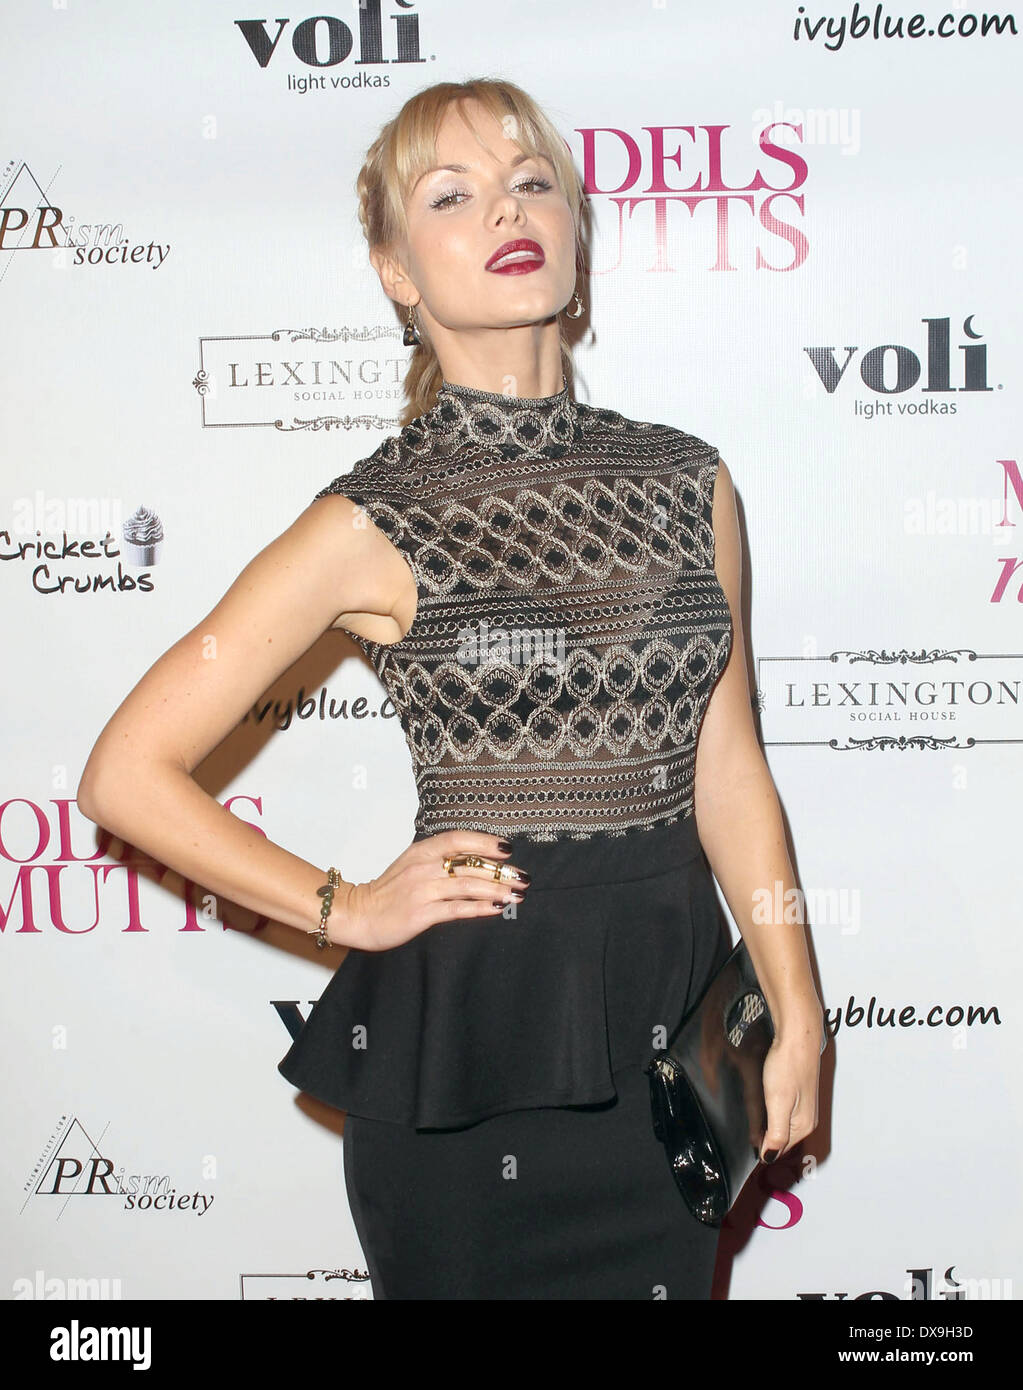 Anya Monzikova at the Launch for charity 'Models n' Mutts.' held at Lexington Social House in Hollywood Featuring: Anya Monziko - Stock Image